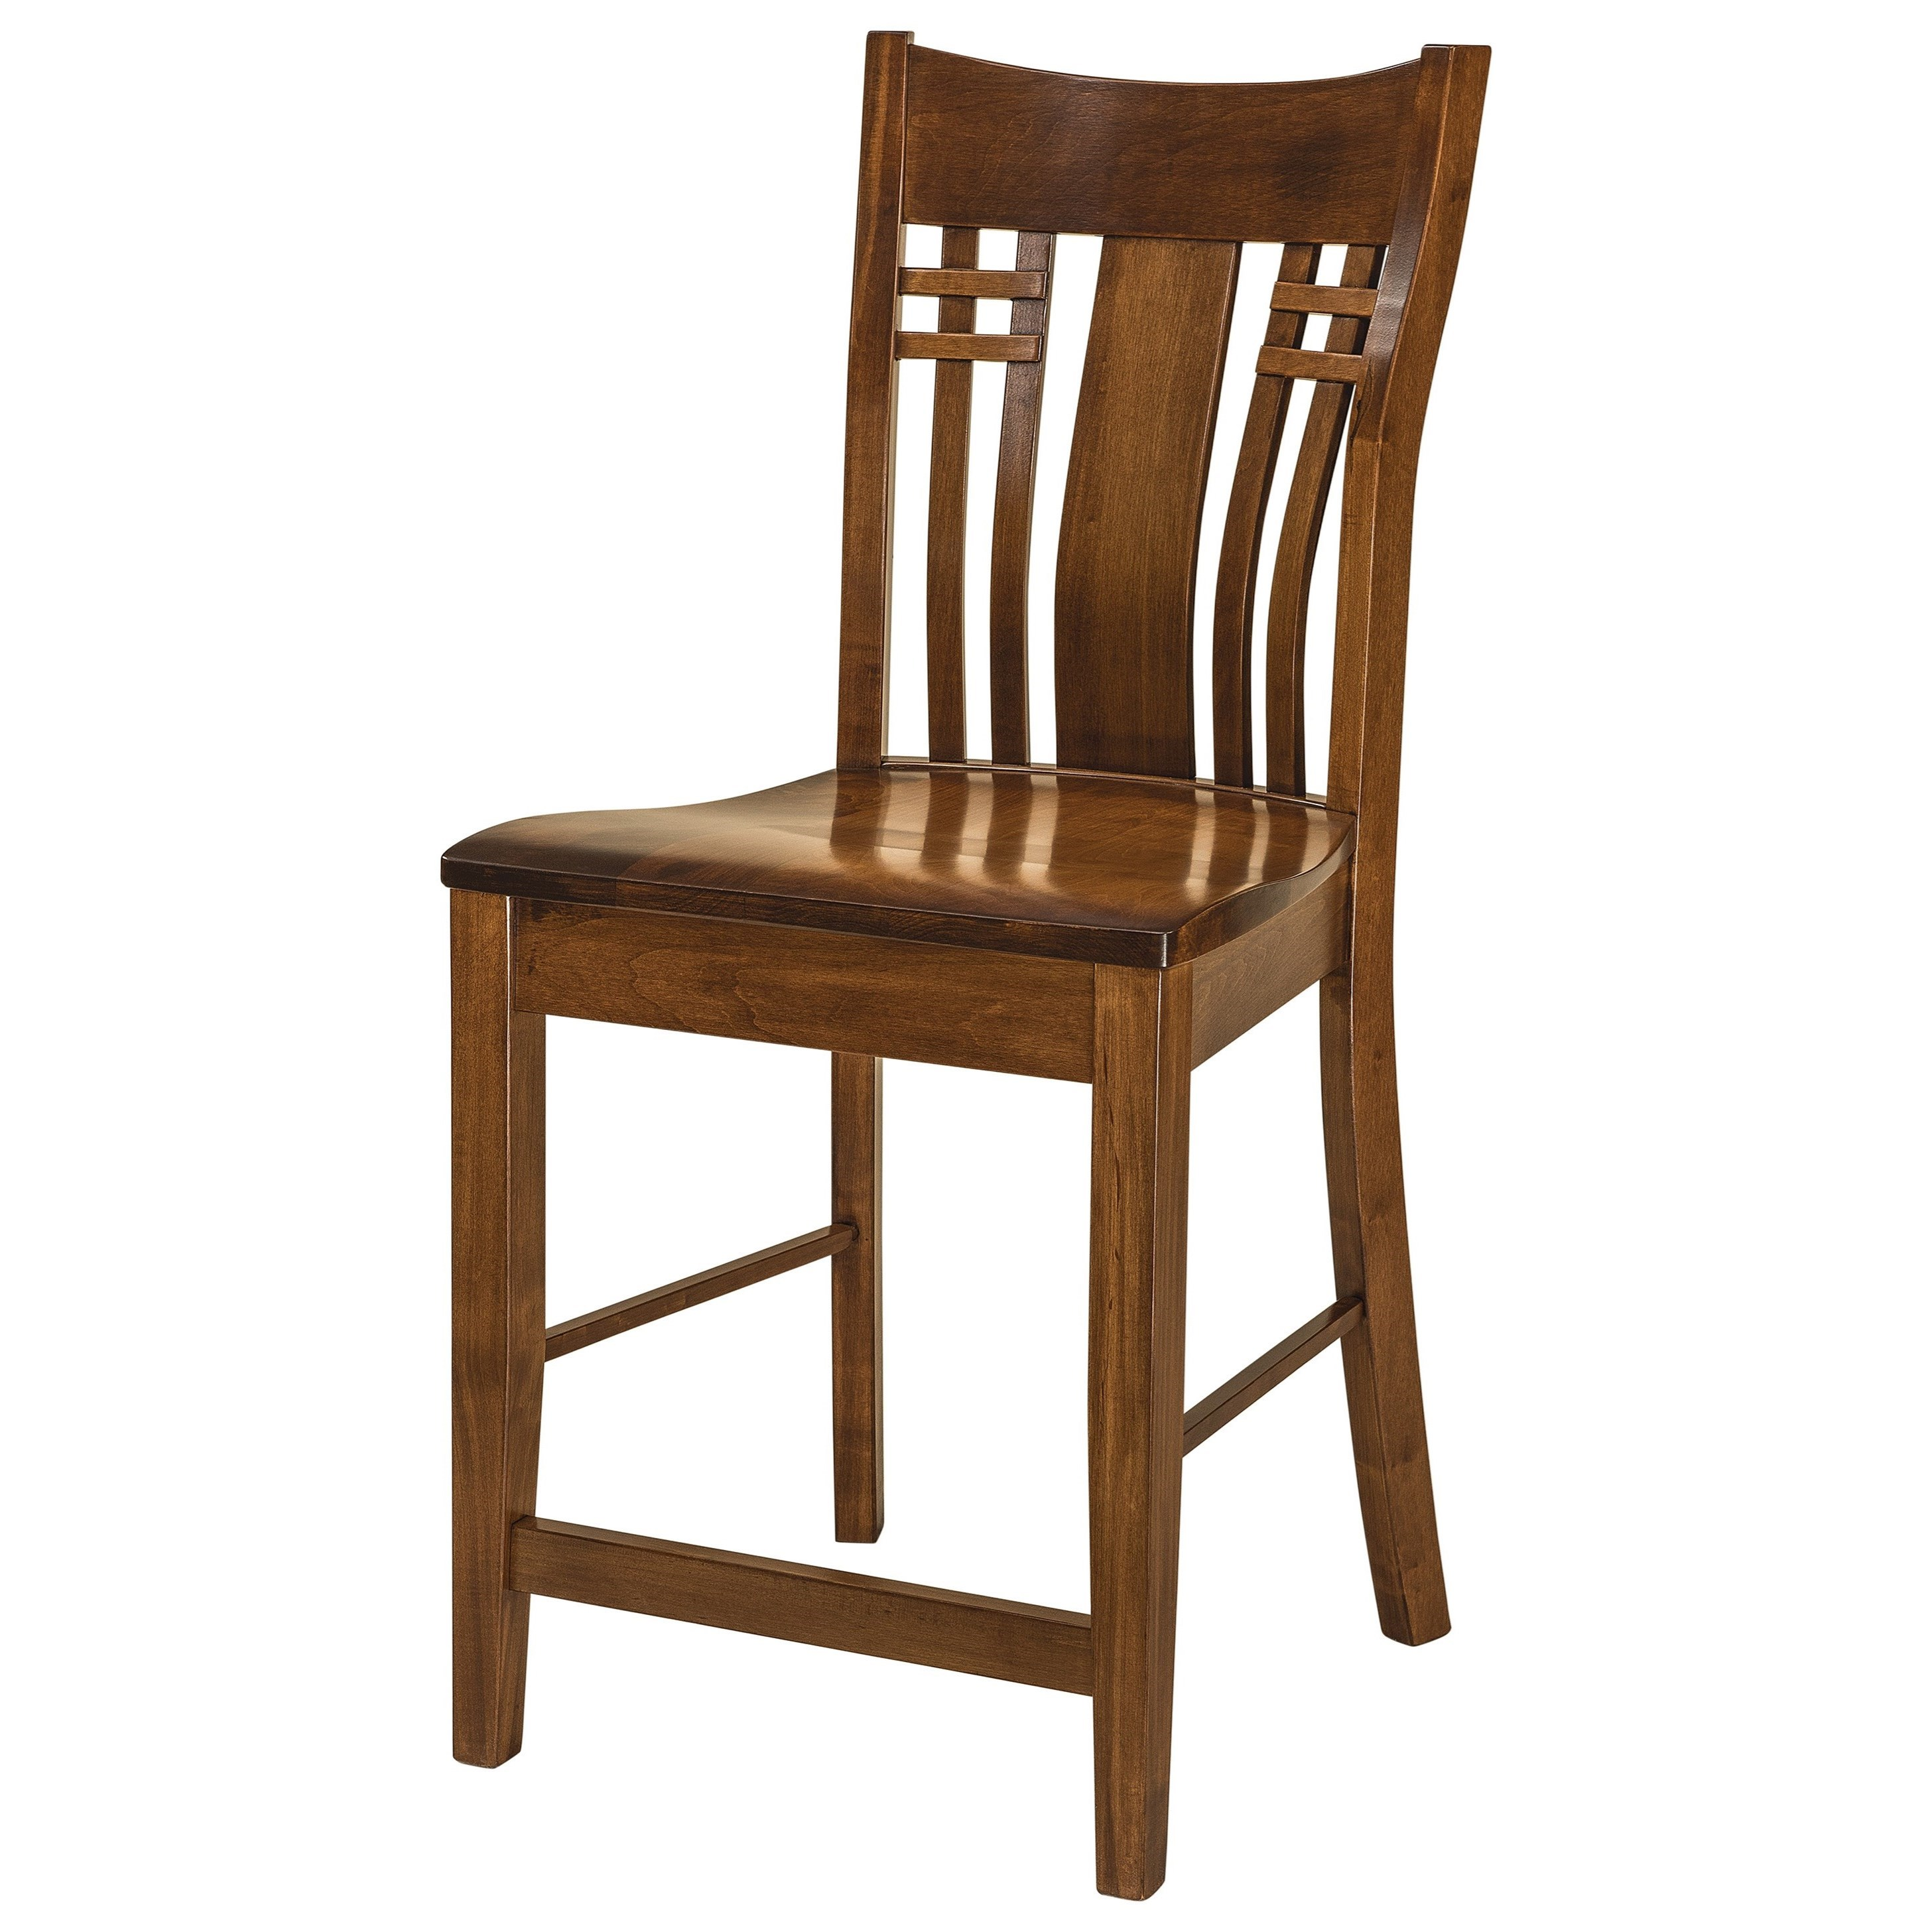 Bennet Stationary Bar Stool - Wood Seat by F&N Woodworking at Mueller Furniture